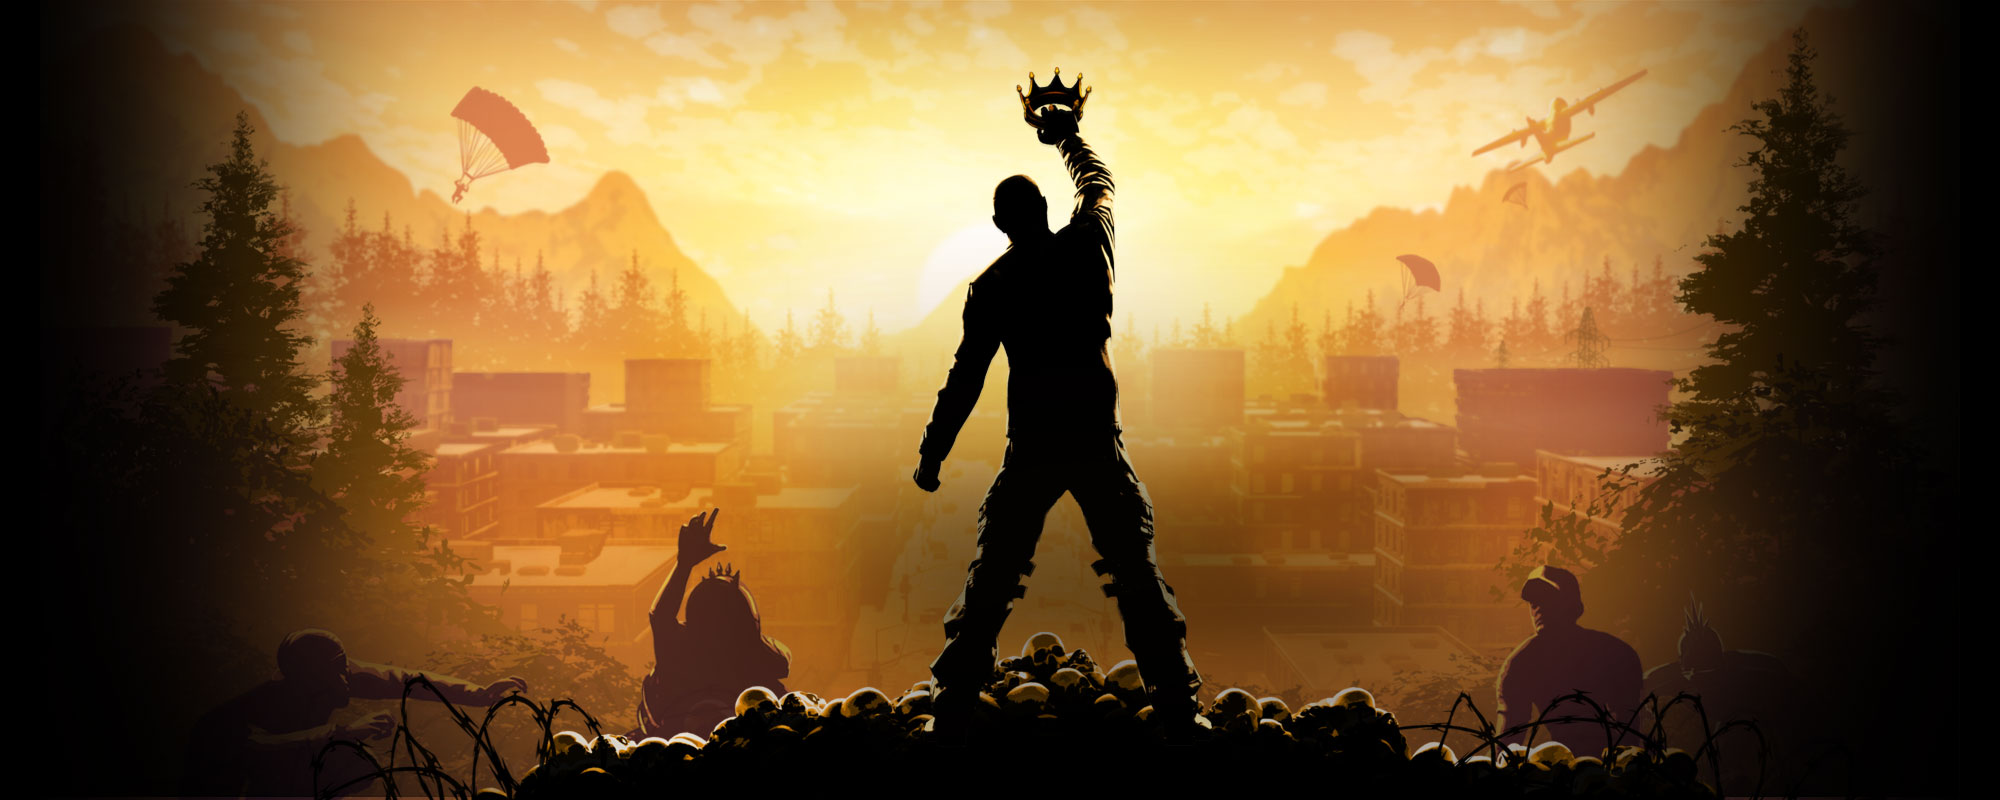 Development of h1z1 for console platforms delayed wholesgame - H1z1 king of the kill xbox one ...